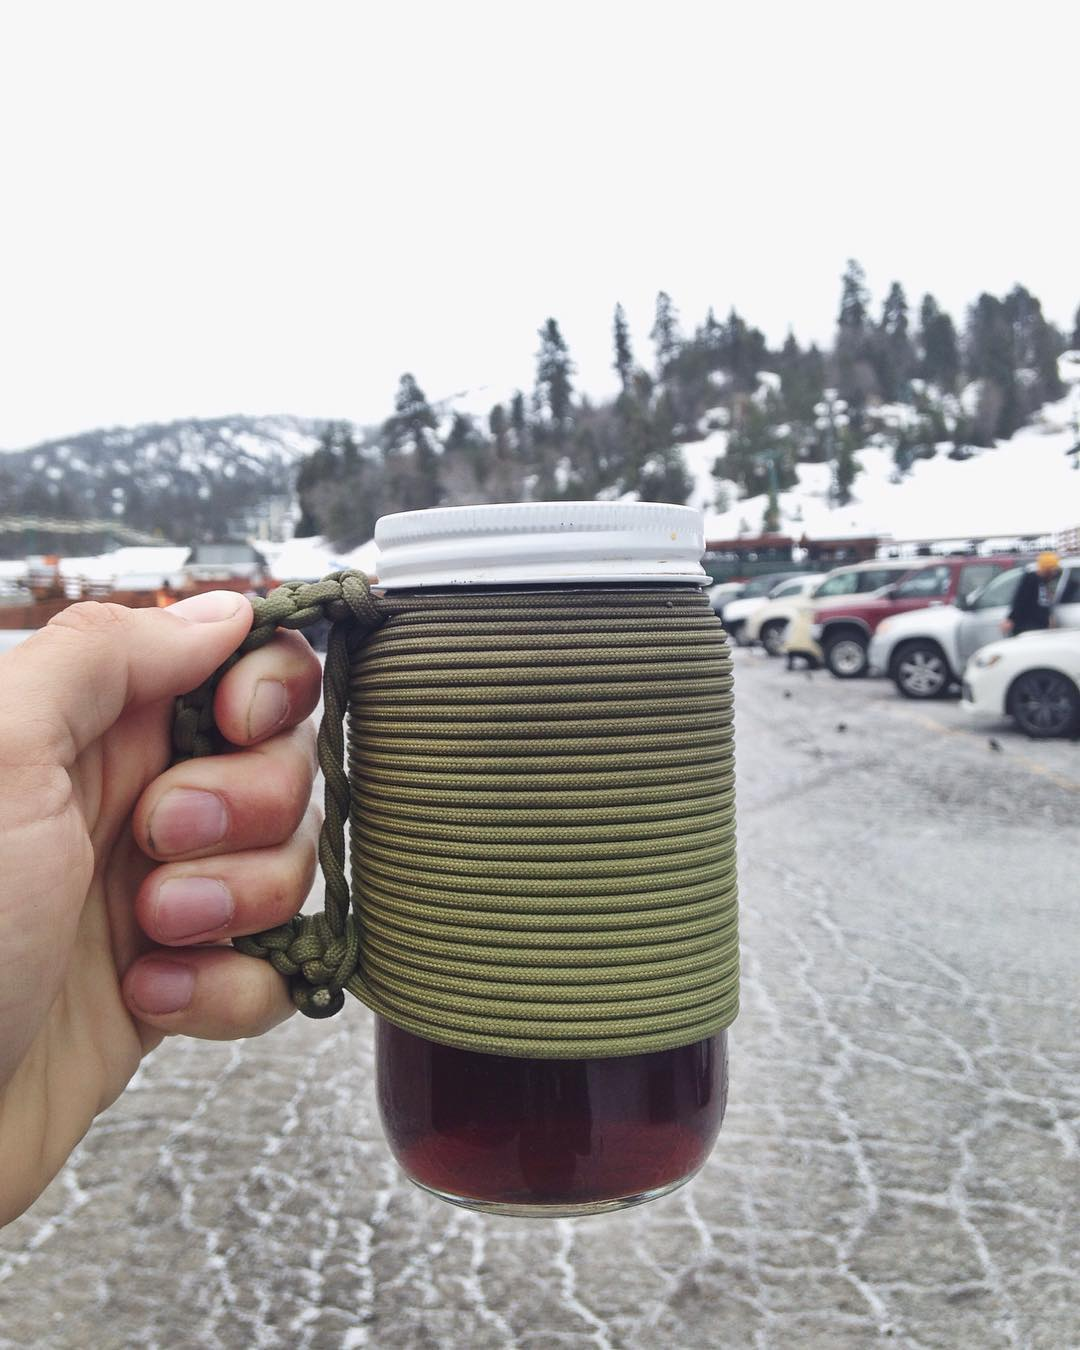 ~ Adventure Mug ~  Be sure to sign up for our new monthly newsletter, Tribe Notes, and get first dibs on new product runs, plus 10% off your first order. Follow the link in our profile to subscribe.  A new round of Adventure Mugs is on the way to our...